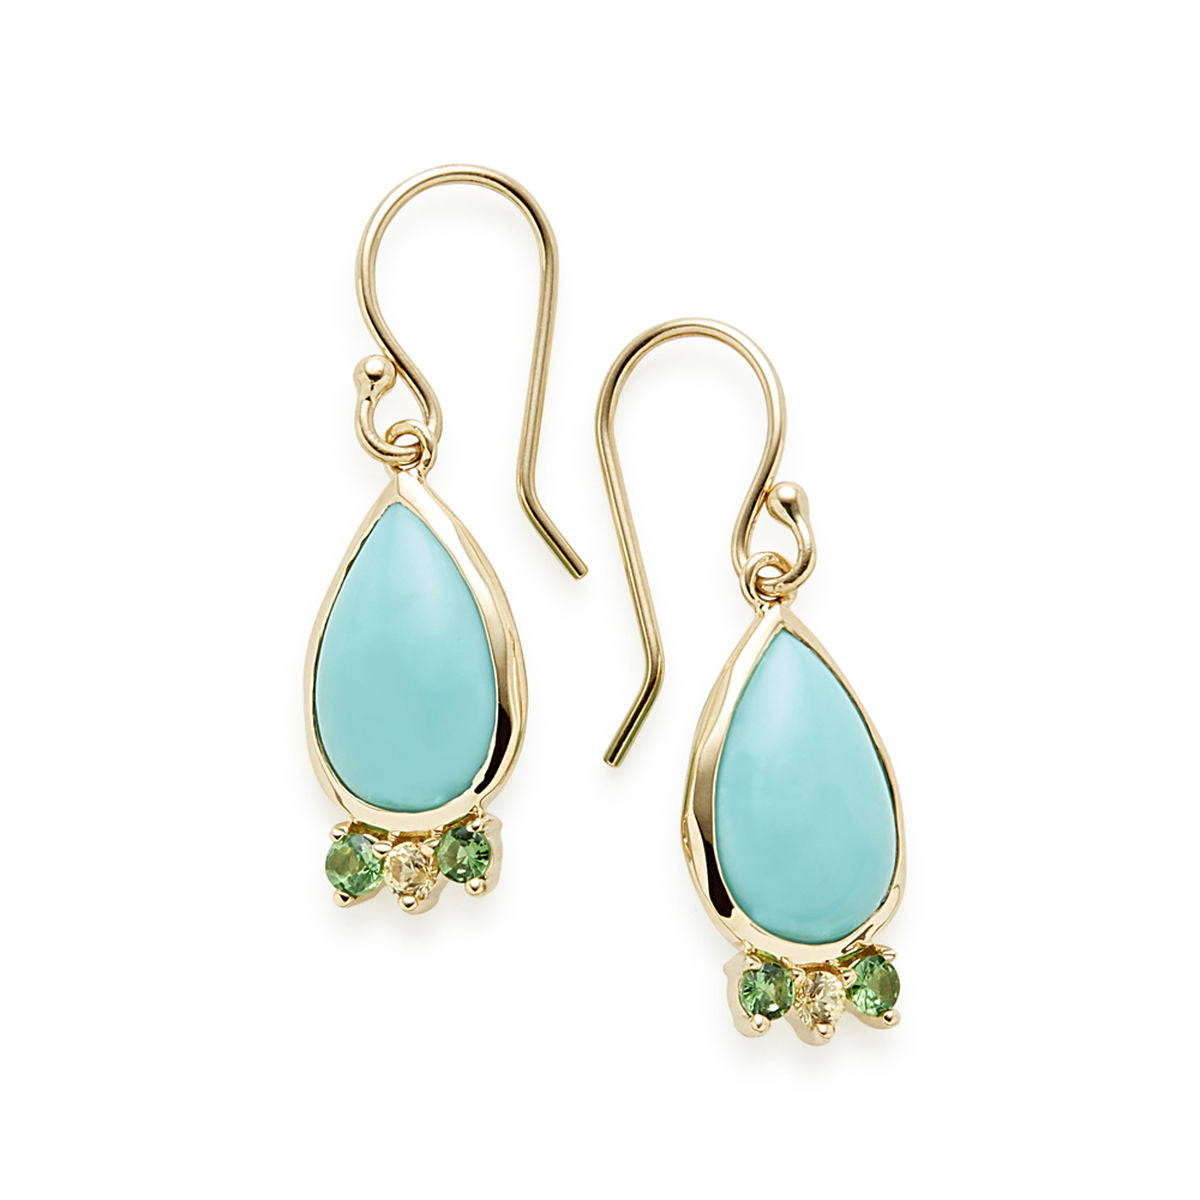 IPPOLITA Prisma 18K Yellow Gold Mini Turquoise Teardrop Earrings with Gemstone Accents